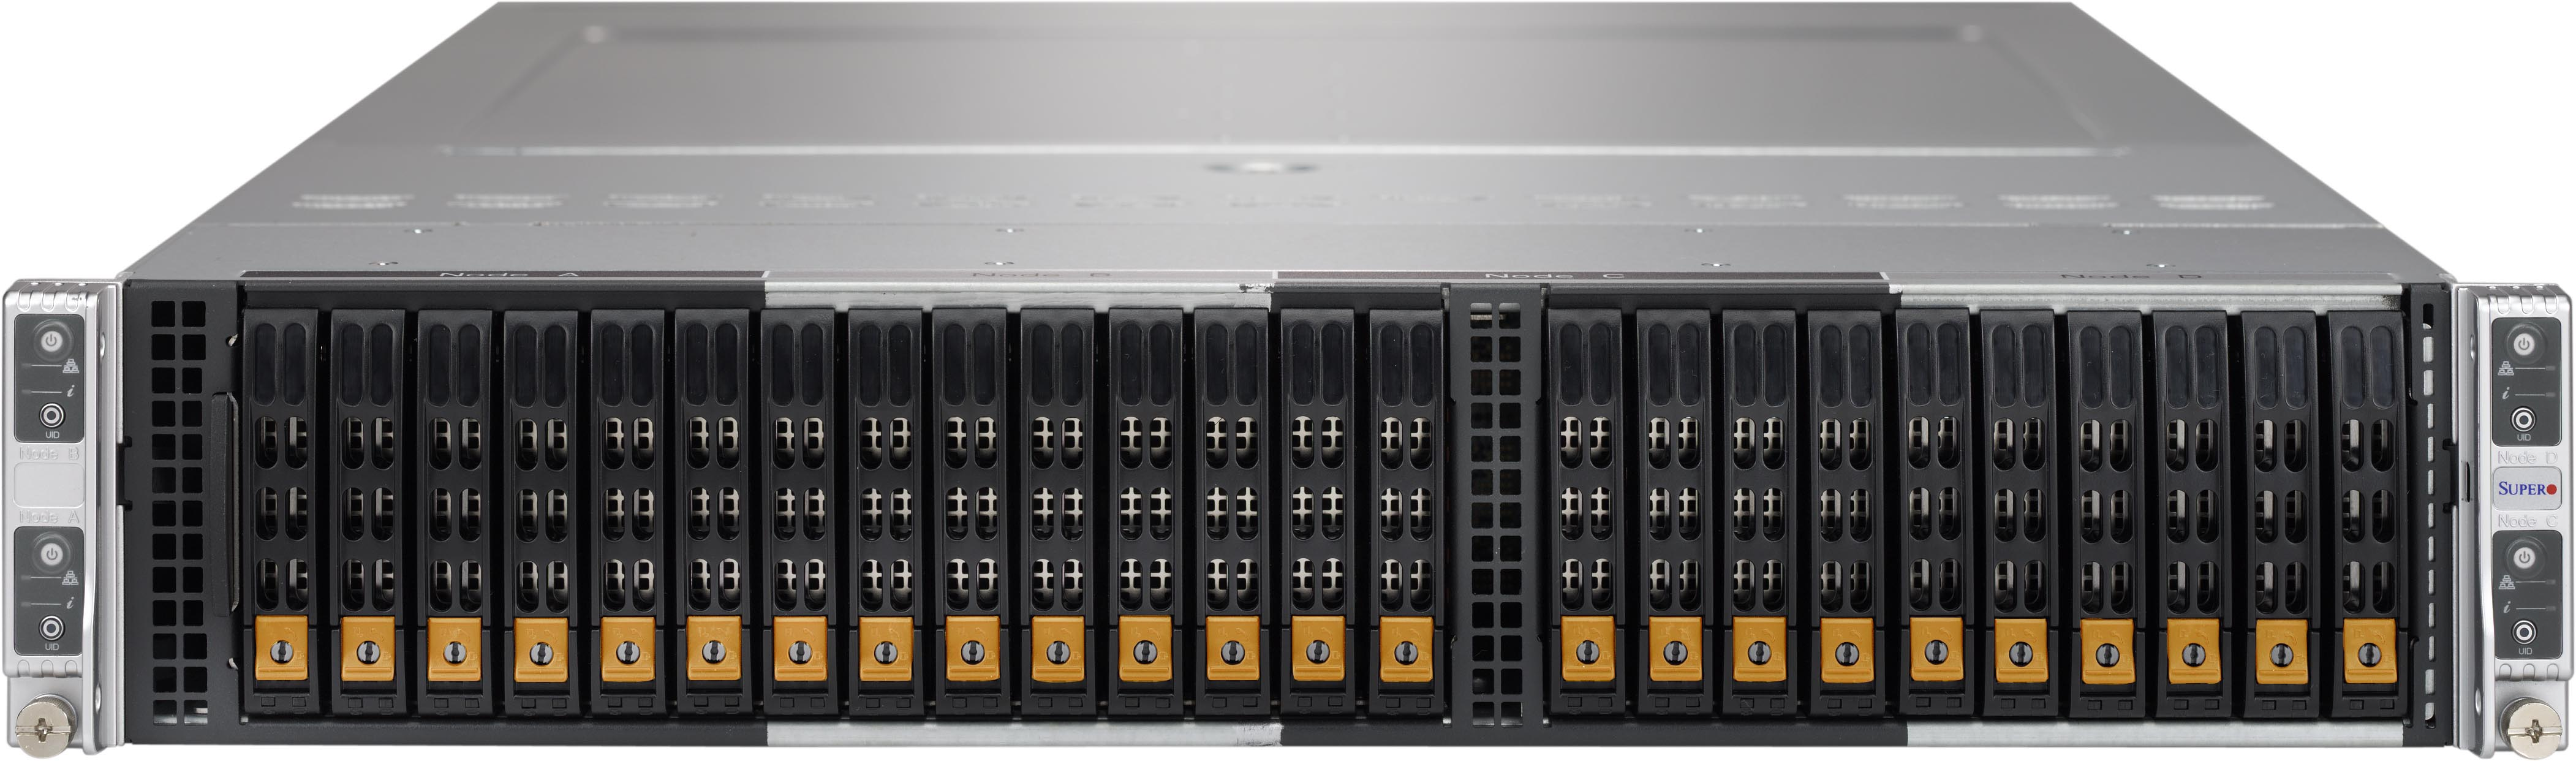 Supermicro BigTwin NVMe Review: The 2U 4-node NVMe chassis